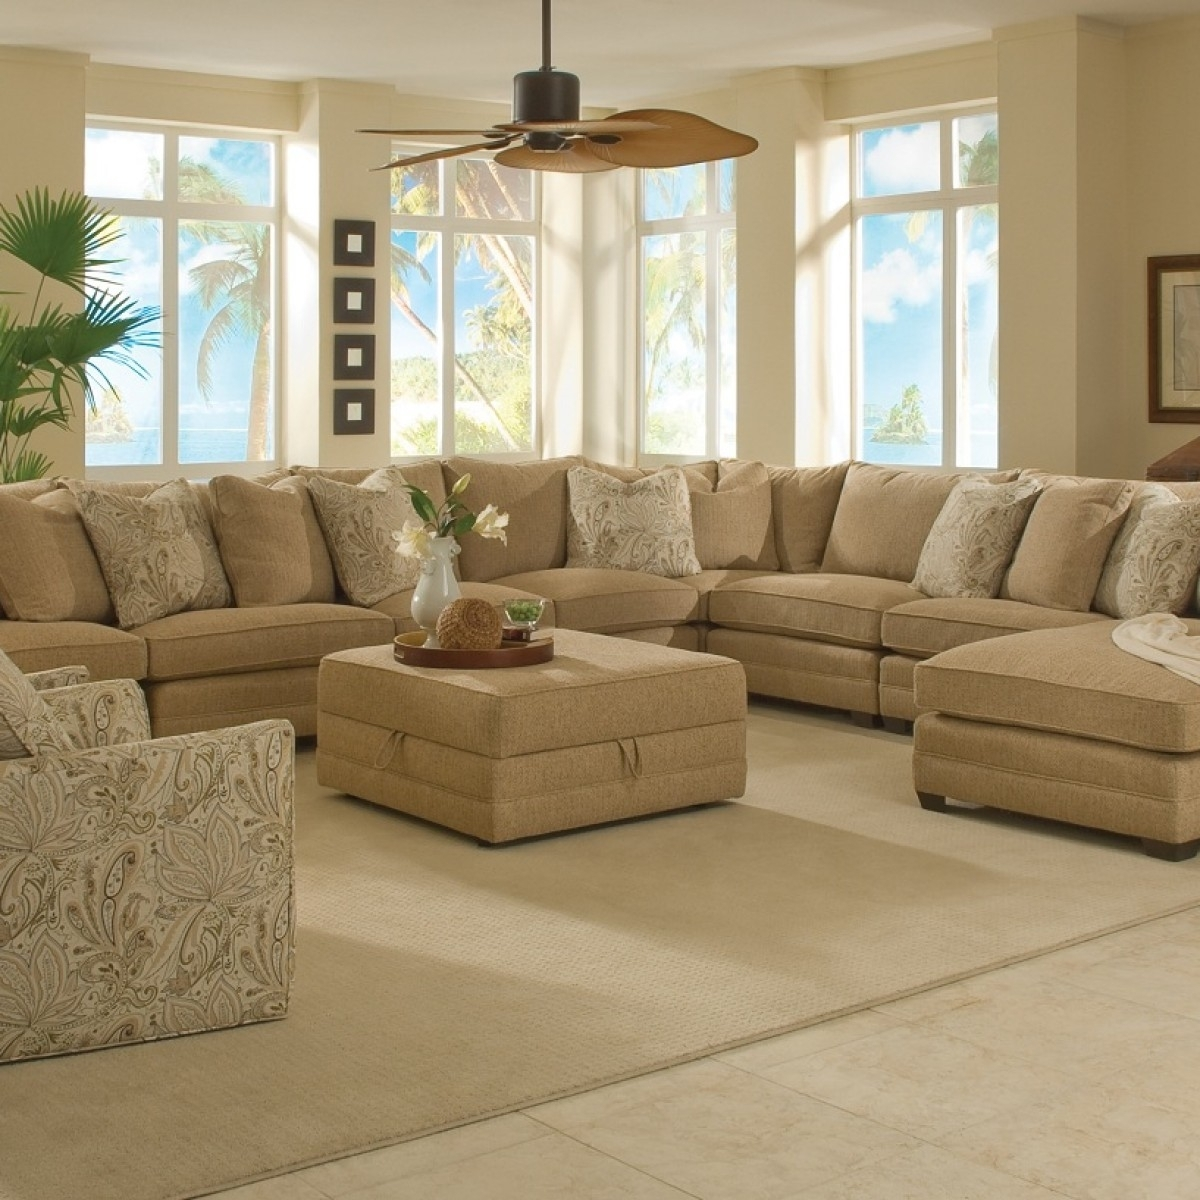 Factors To Consider Before Buying An Extra Large Sectional Sofa intended for Sectional Couches With Large Ottoman (Image 9 of 15)